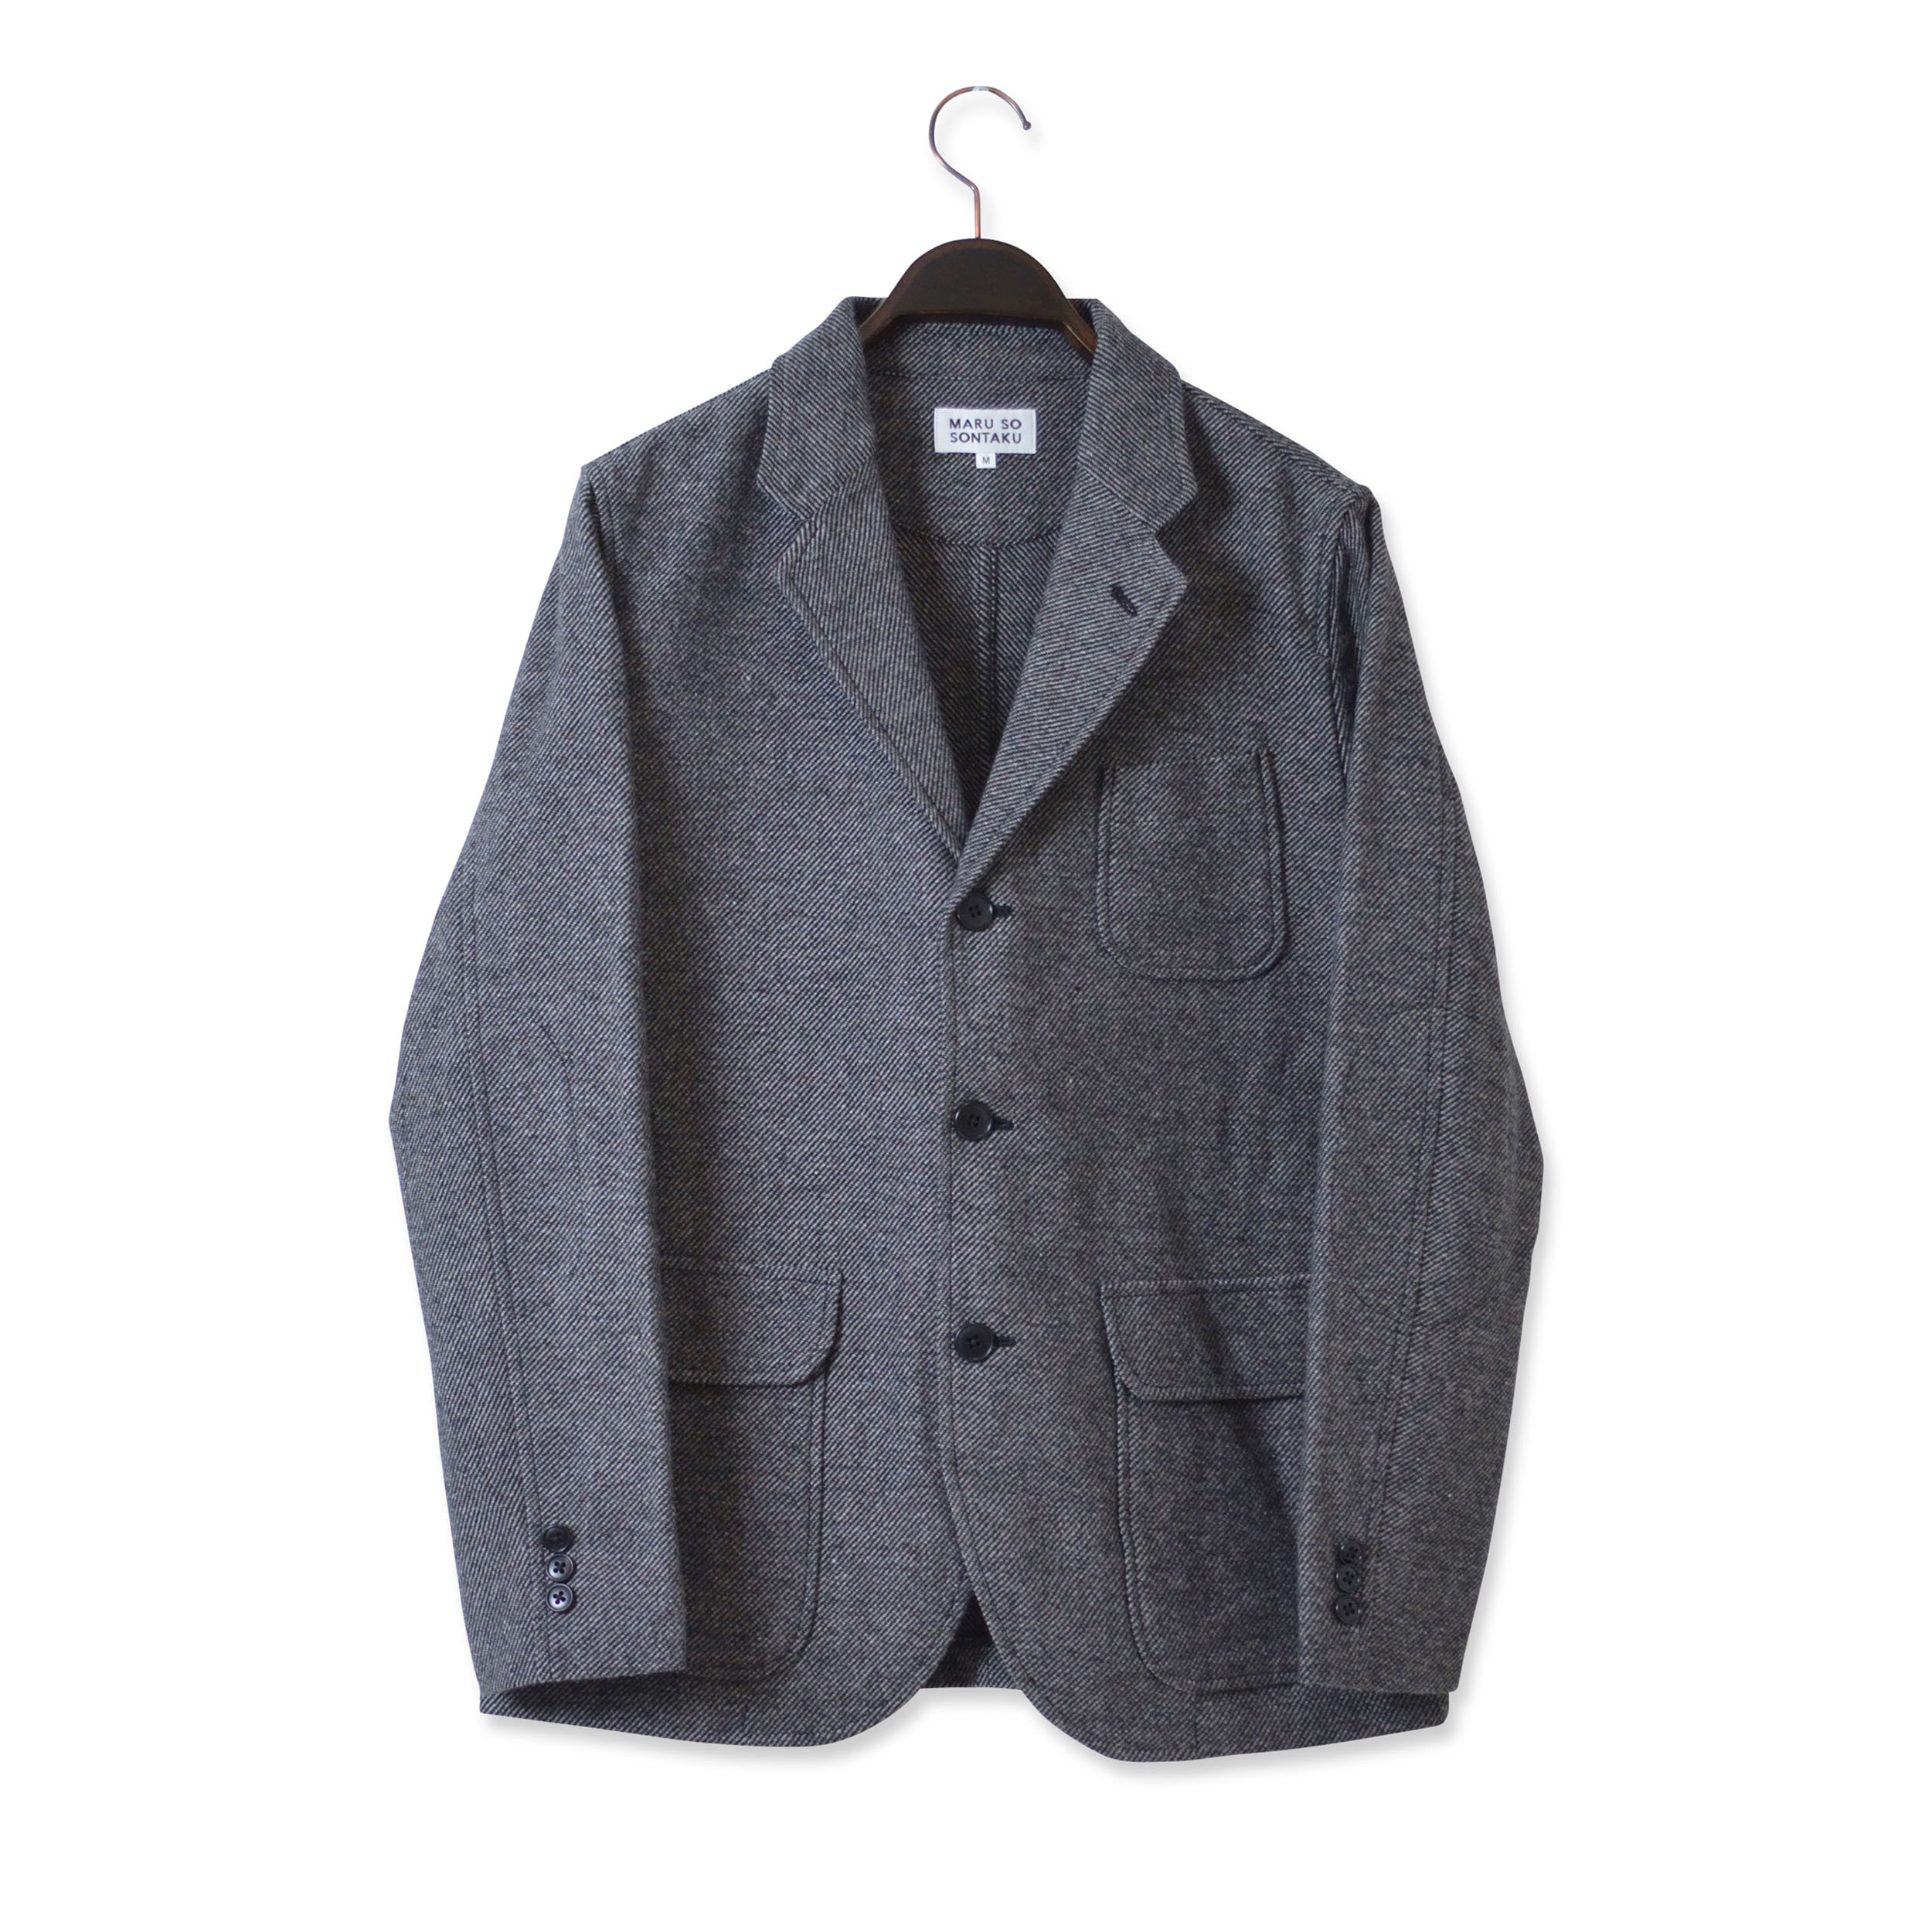 ULTRA LIGHT TWEED JACKET (SONTAKU)